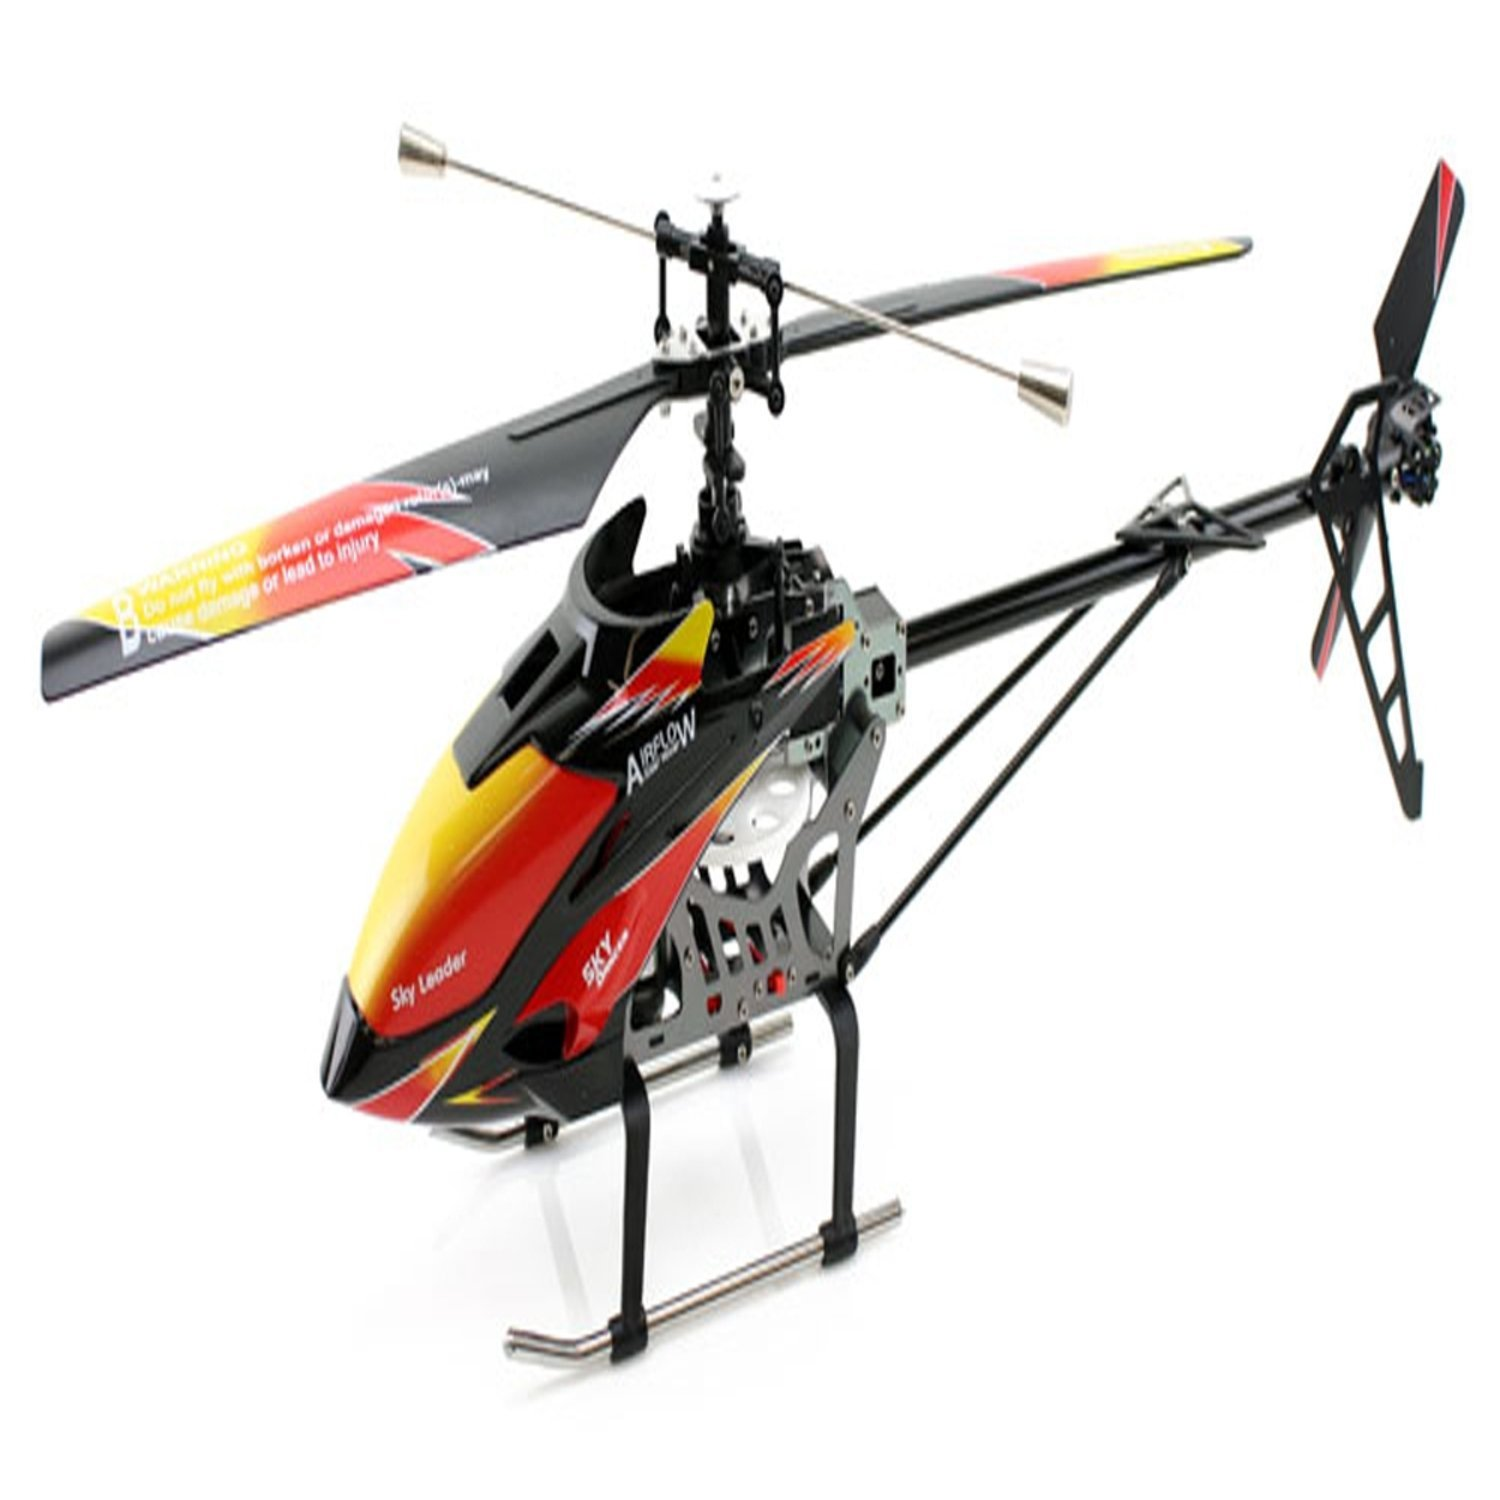 "WL V913 27"" Large 4 Channel 4CH RC Helicopter 2.4GHz Radio Control"